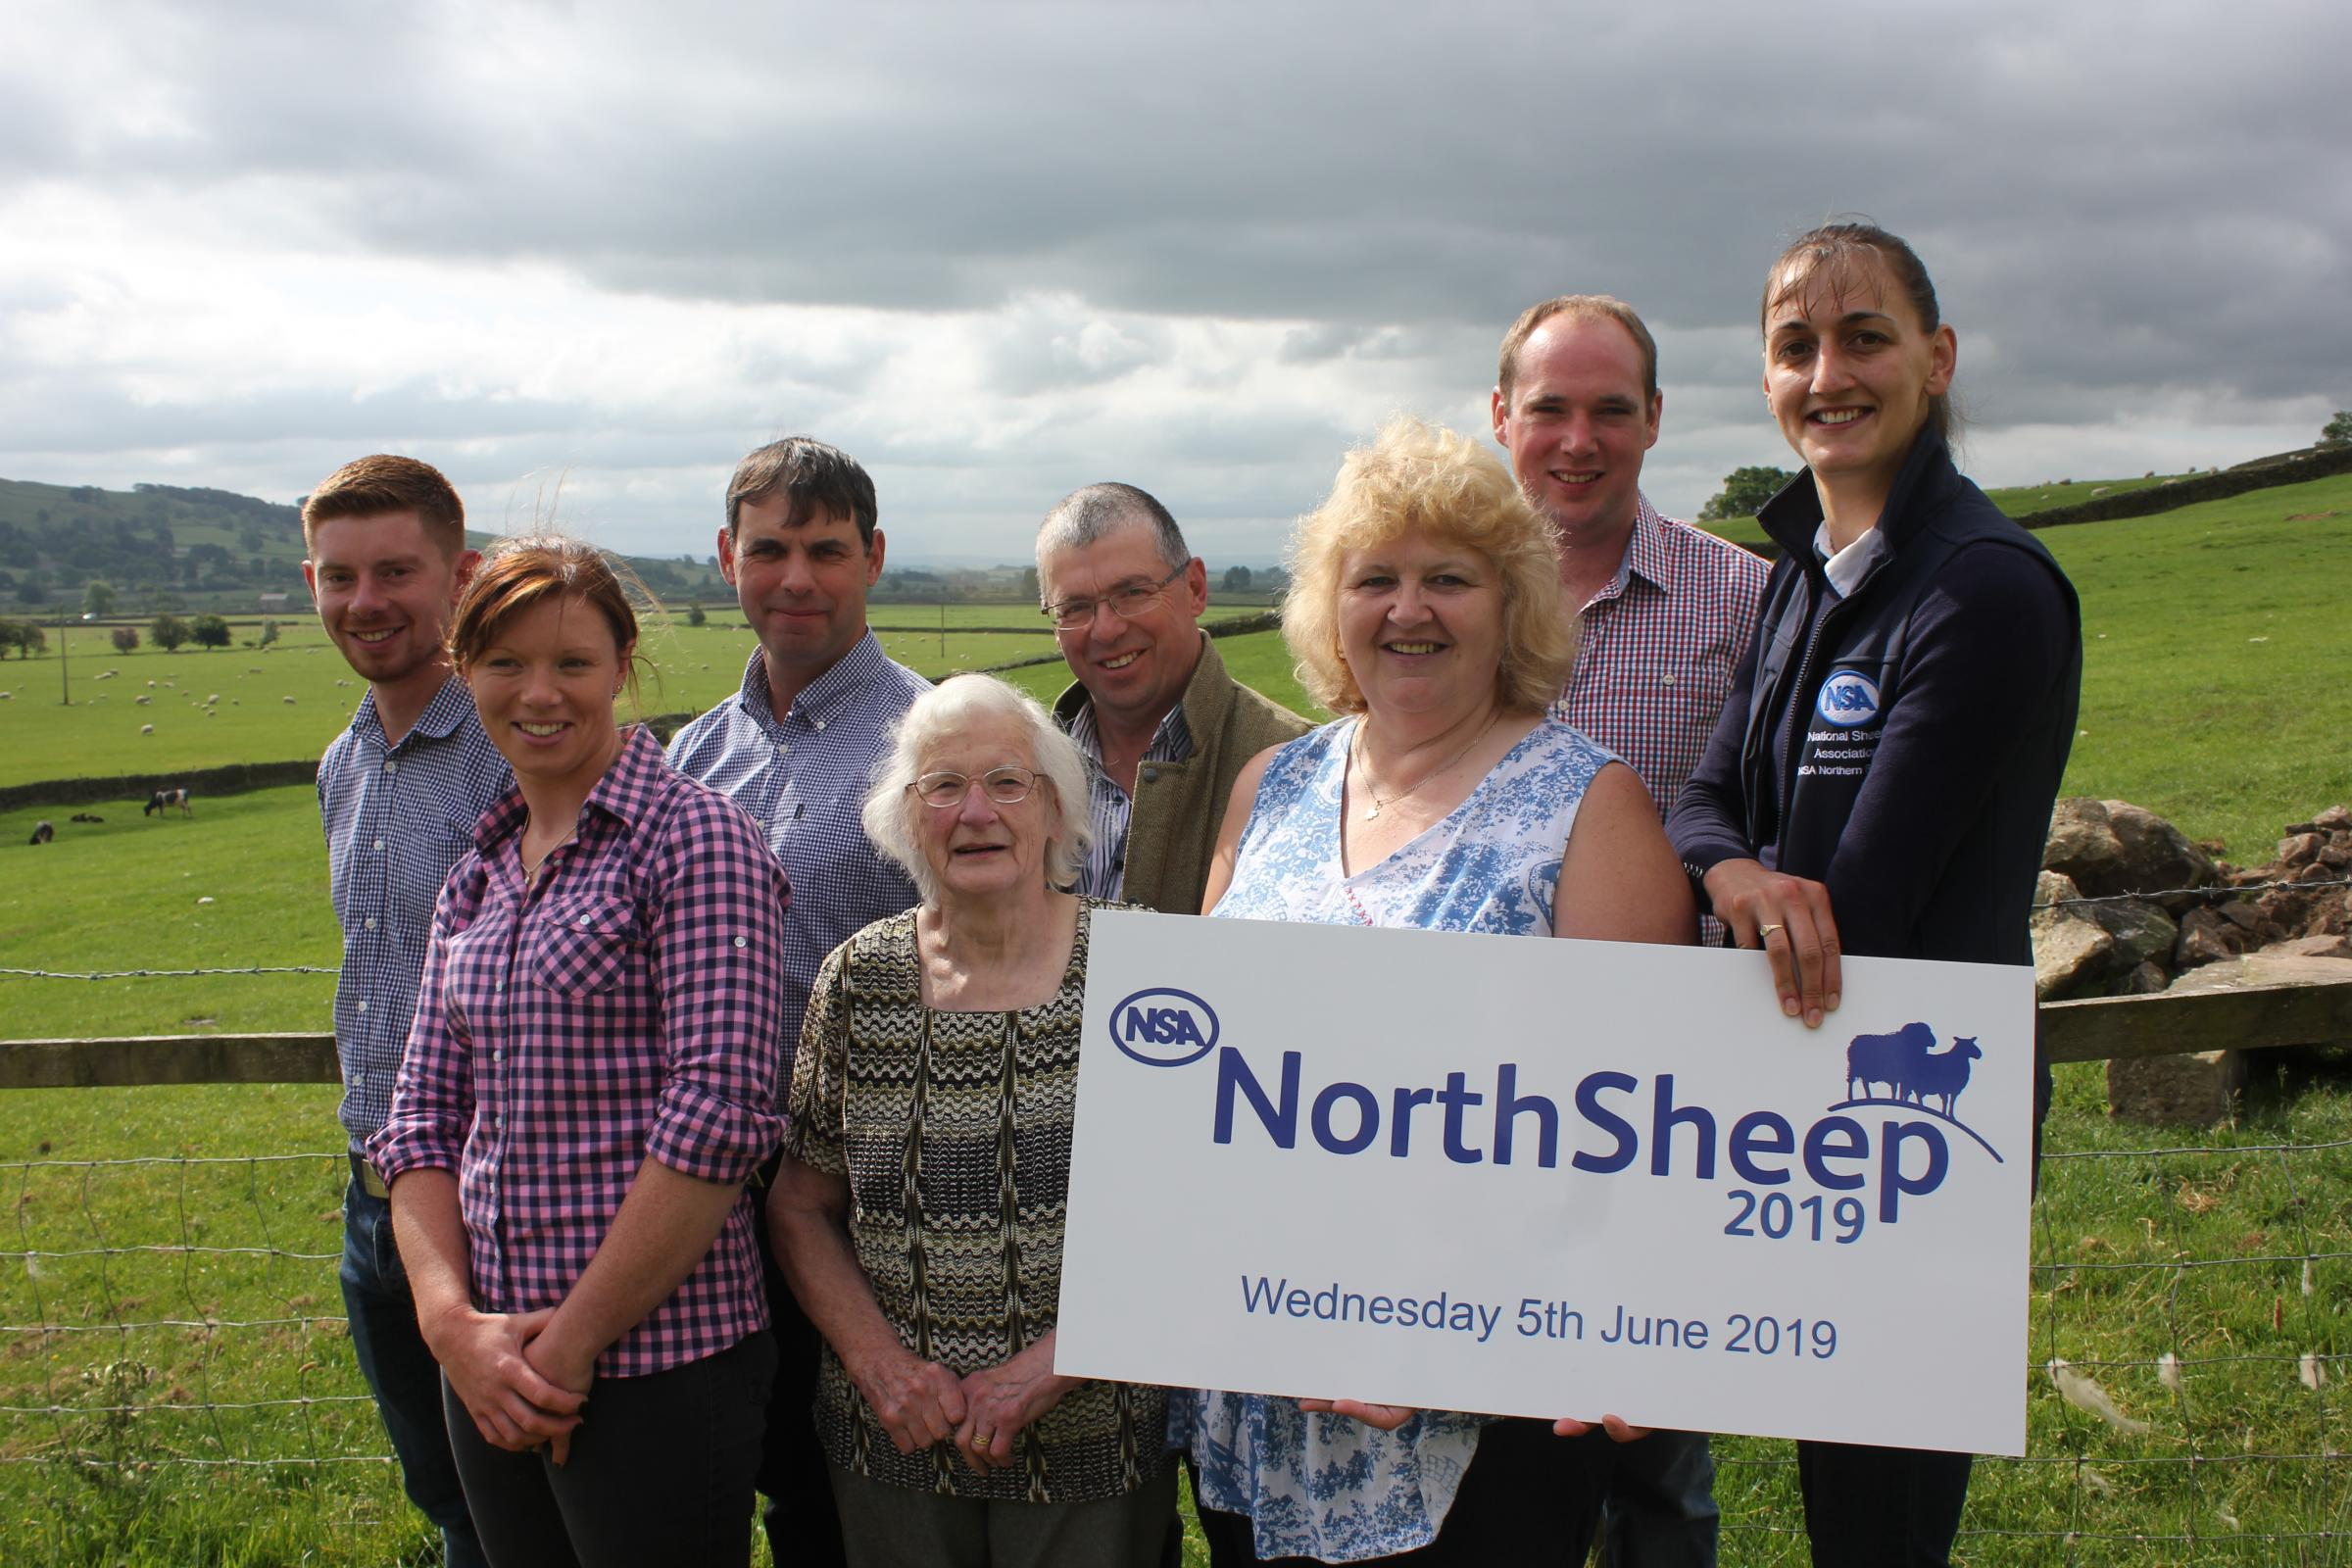 The Frankland family, who are looking forward to hosting the National Sheep Association event at their New Hall Farm, Rathmell, to be held in June next year